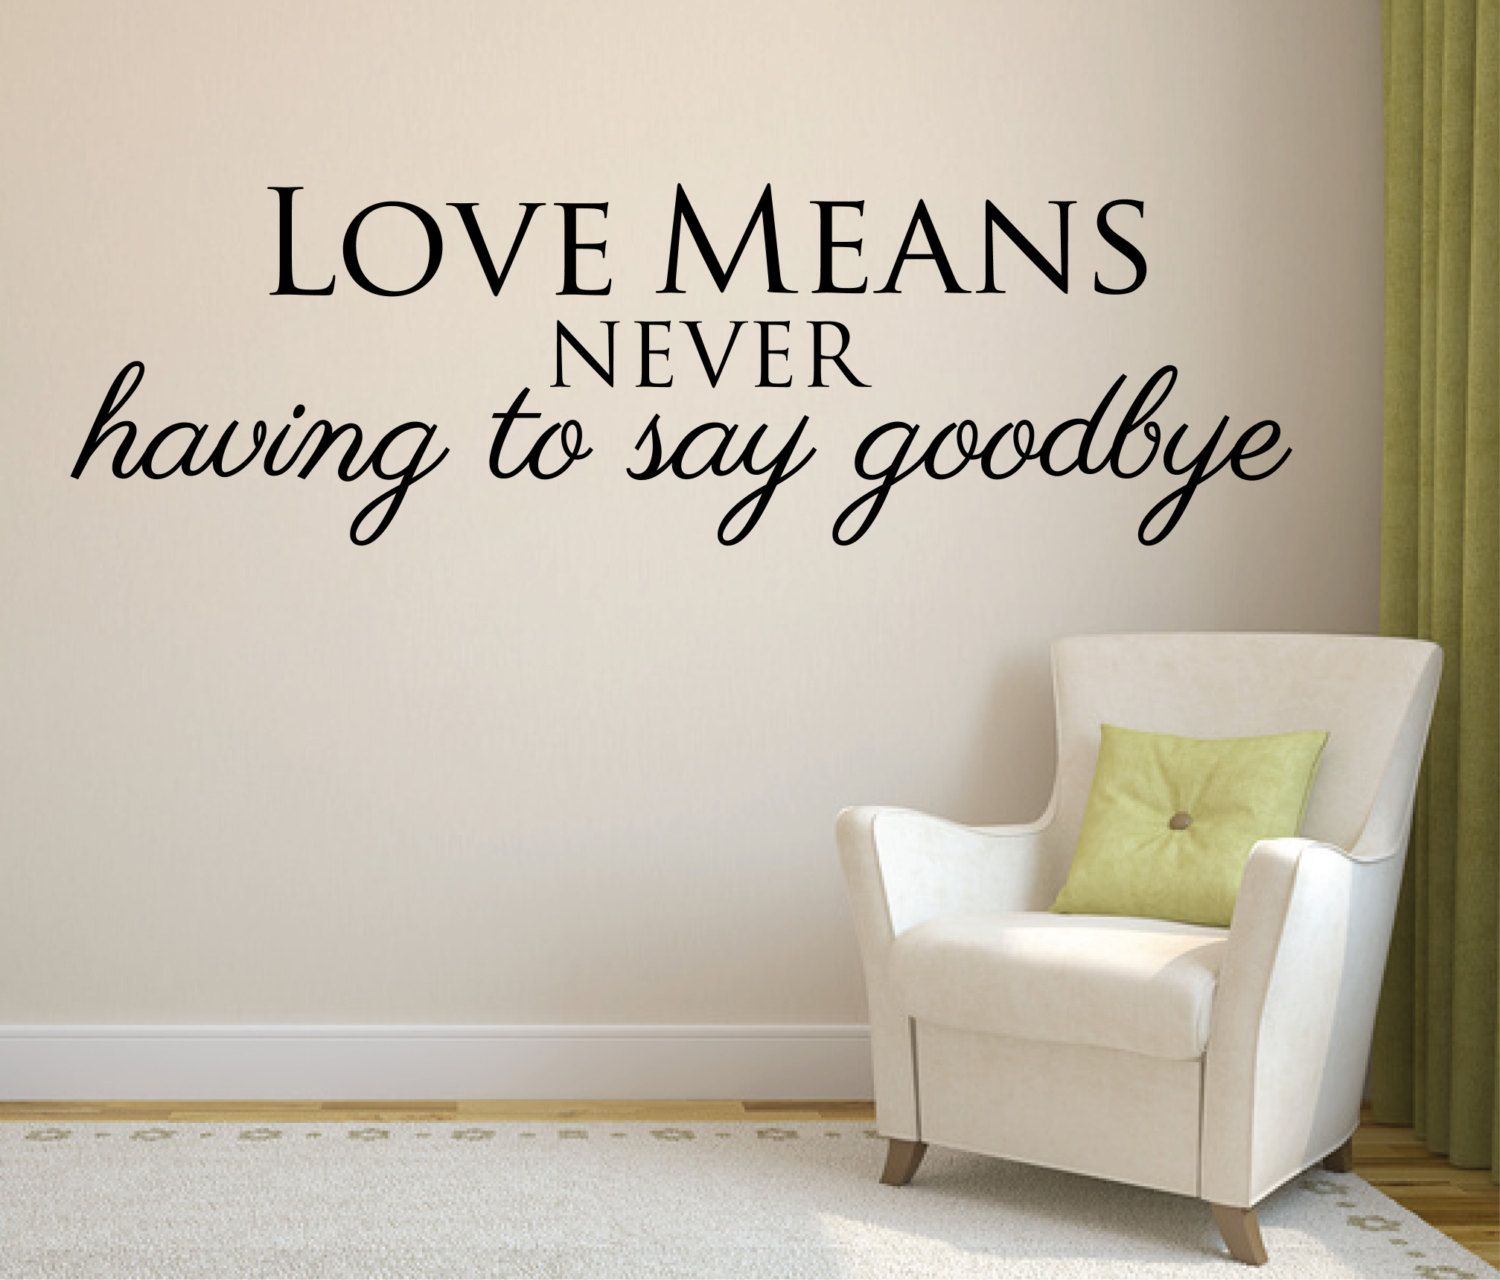 Elegant Wall Decal Love Quote   Love Means Never Having To Say Goodbye | Cute Wall  Decor | Love Wall Decal | Art Sticker Wall Graphic Saying By FixateDesigns  On ...